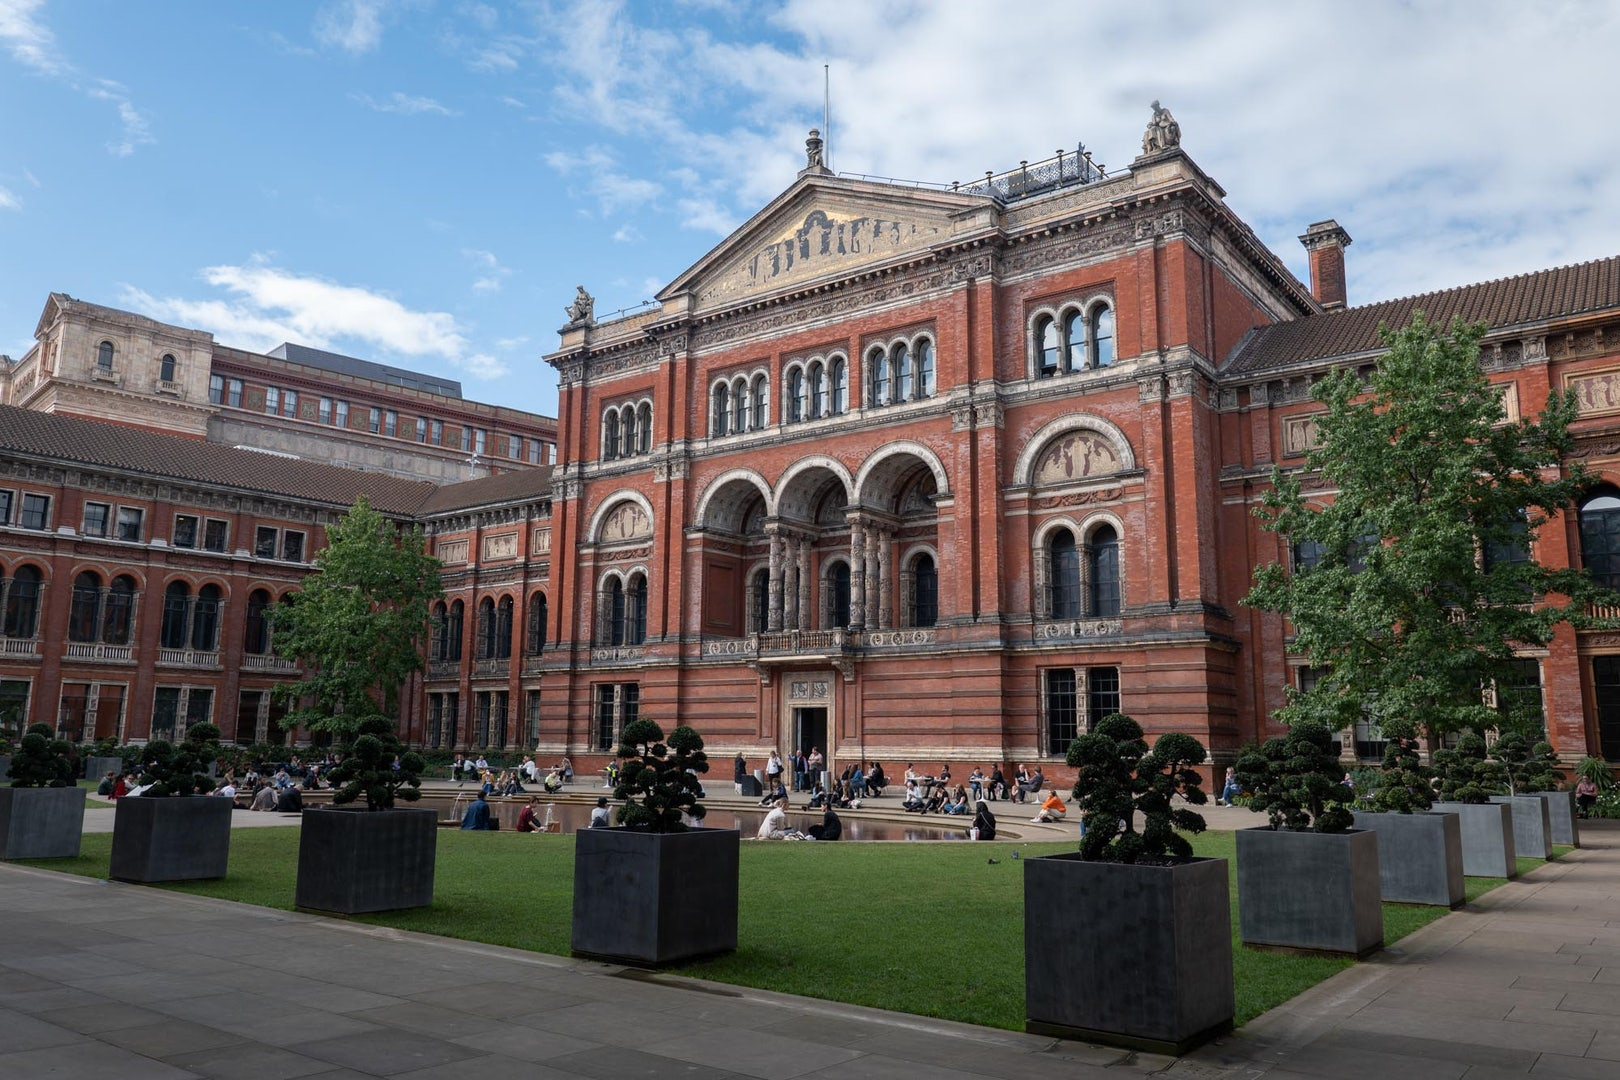 exterior of the V&A Museum in London